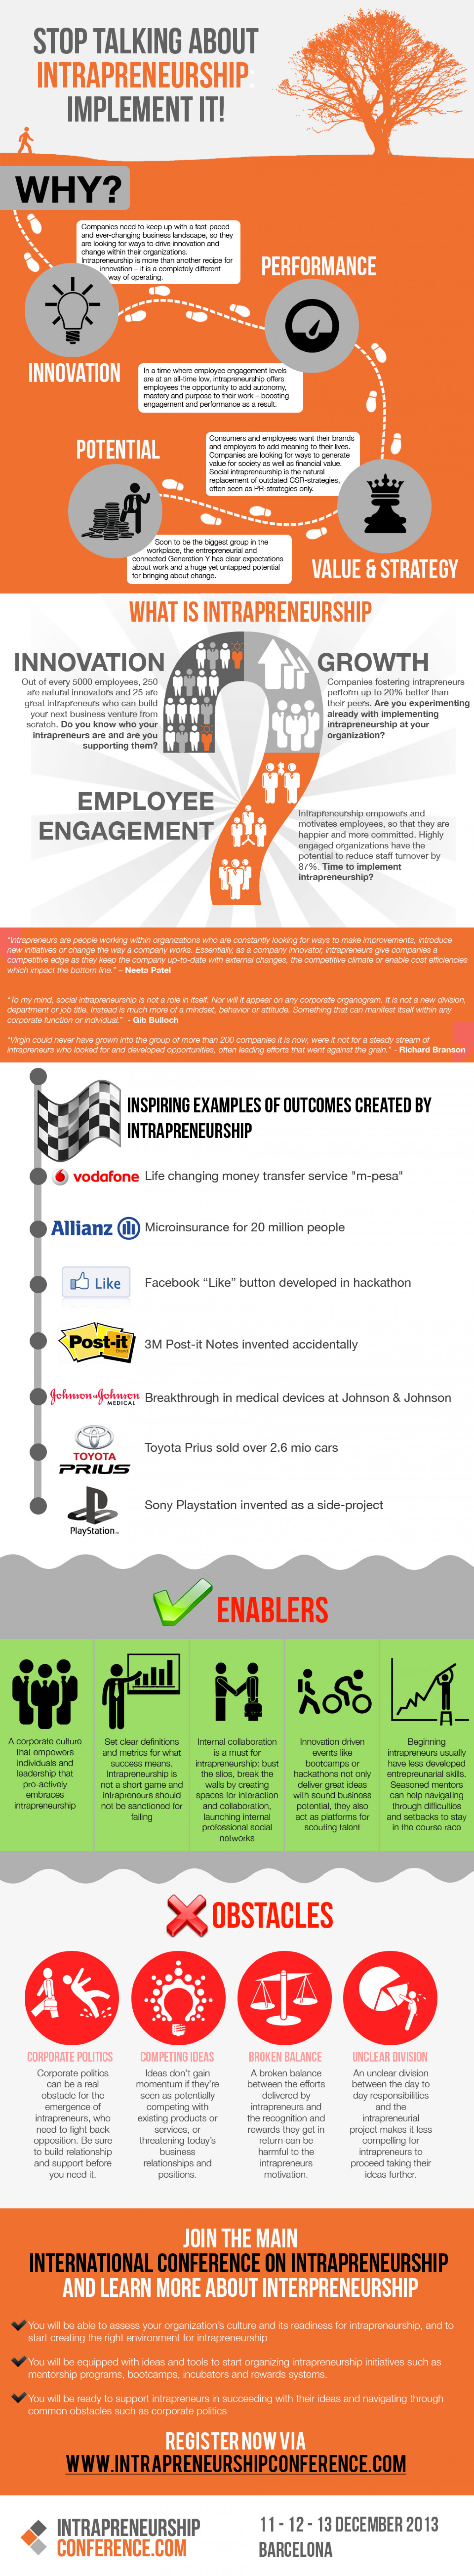 What is Intrapreneurship? Infographic